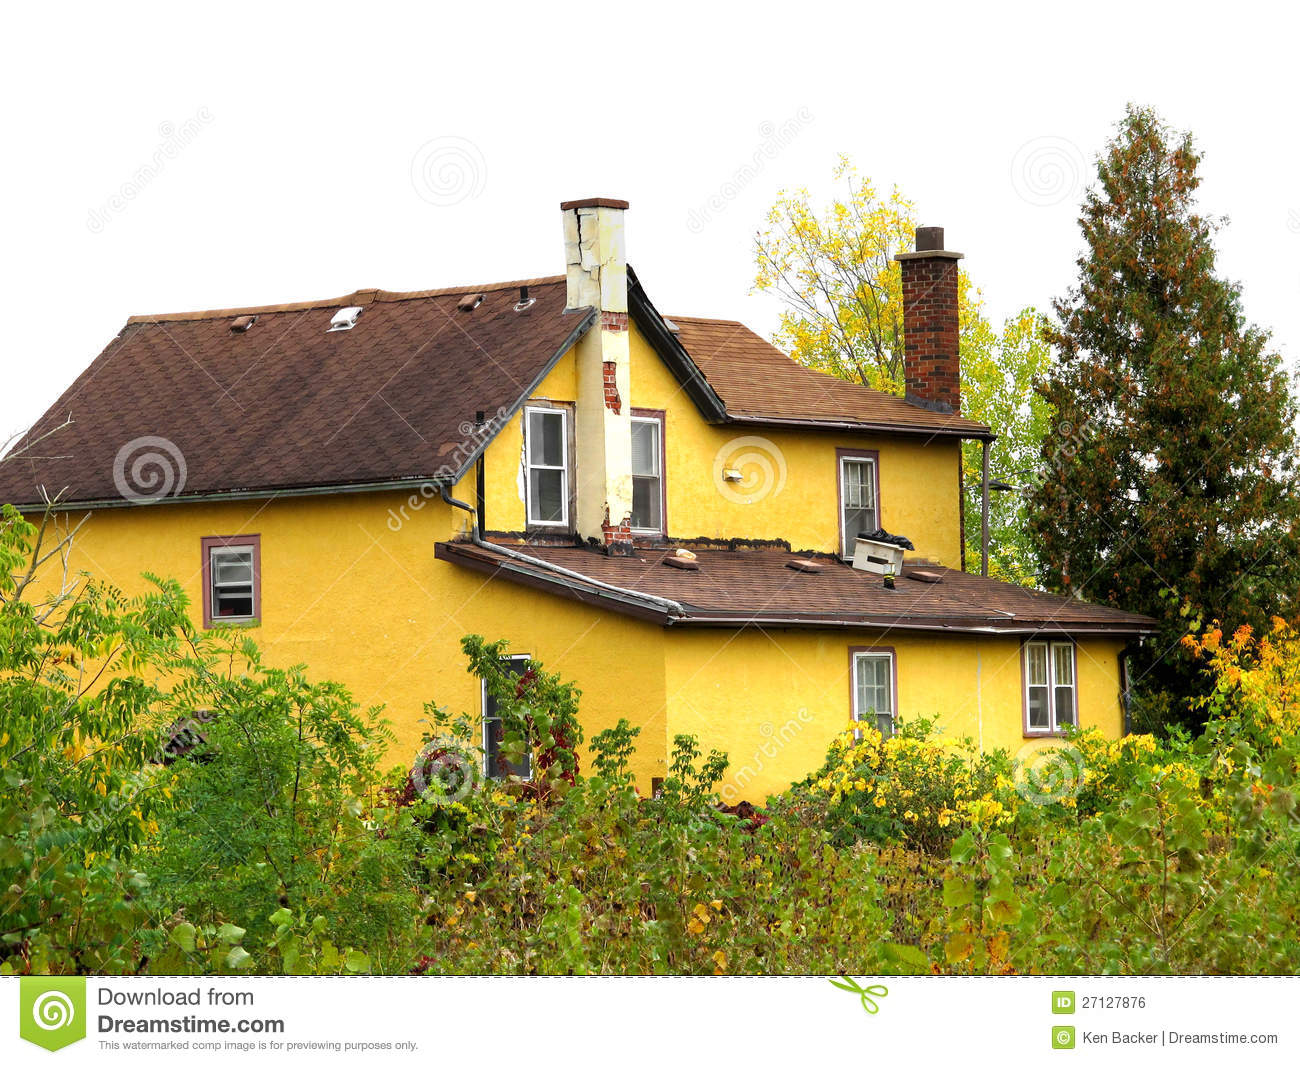 condemned and abandoned yellow city house royalty free